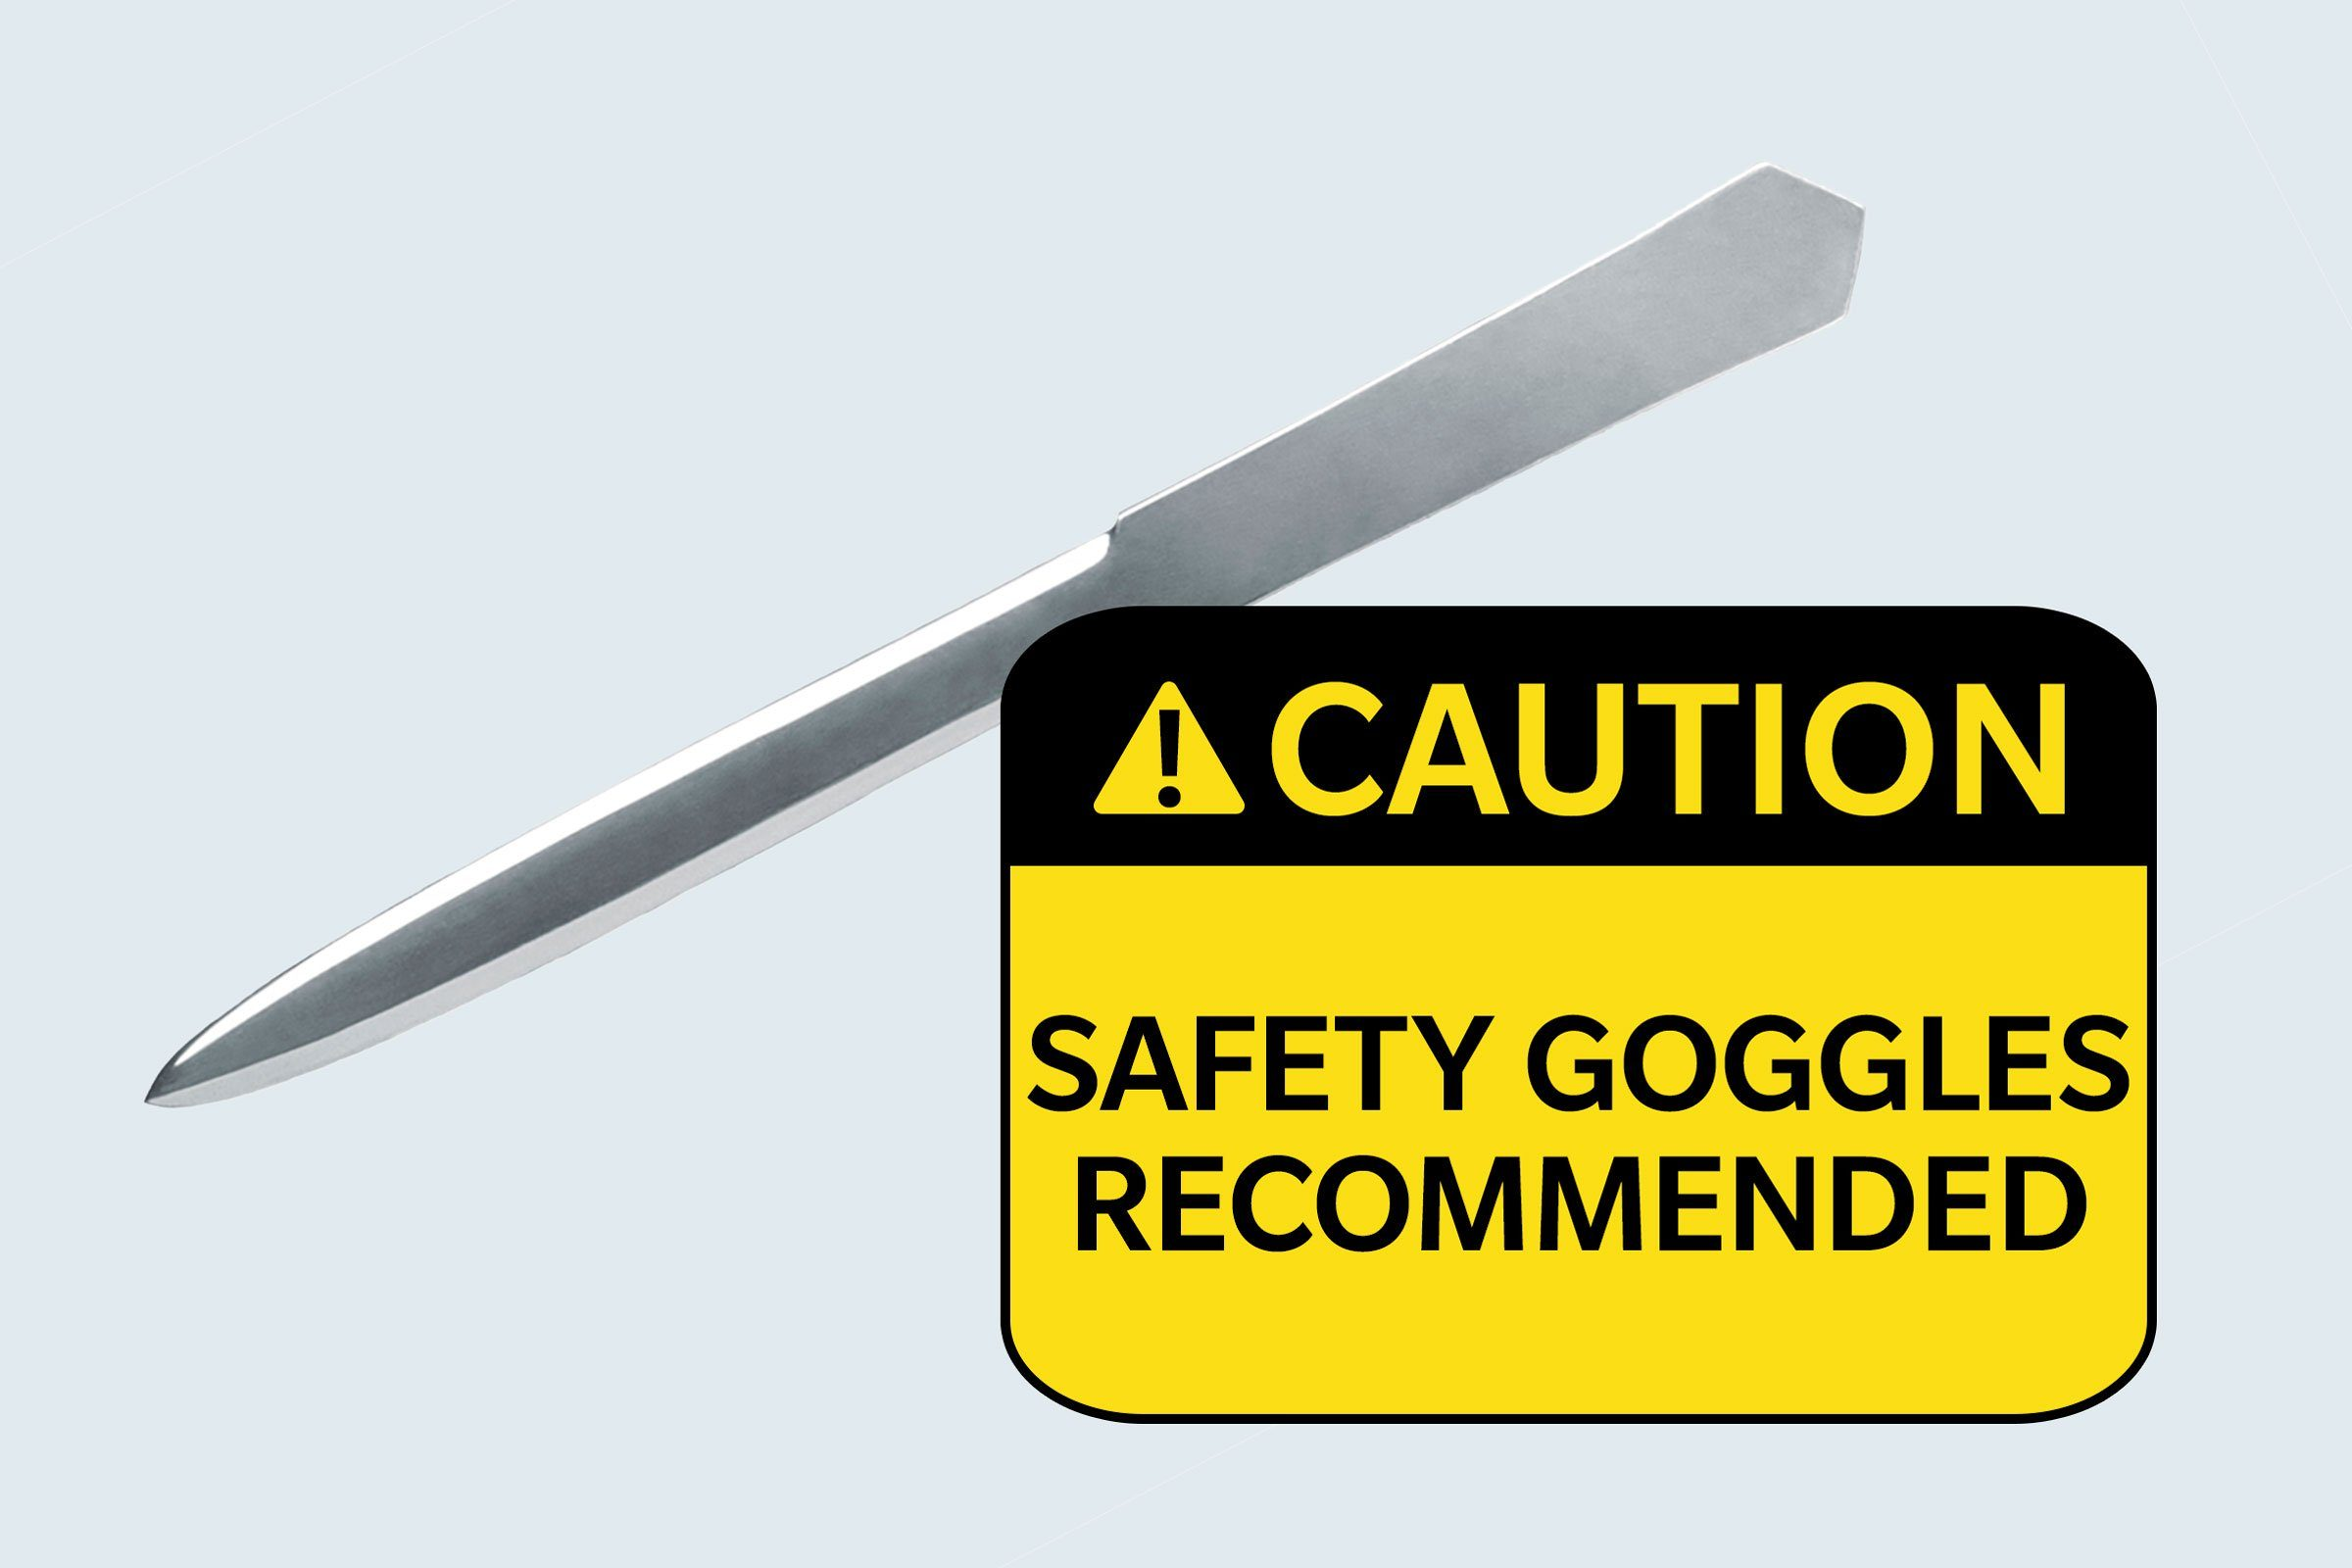 letter opener. Caution: safety goggles recommended